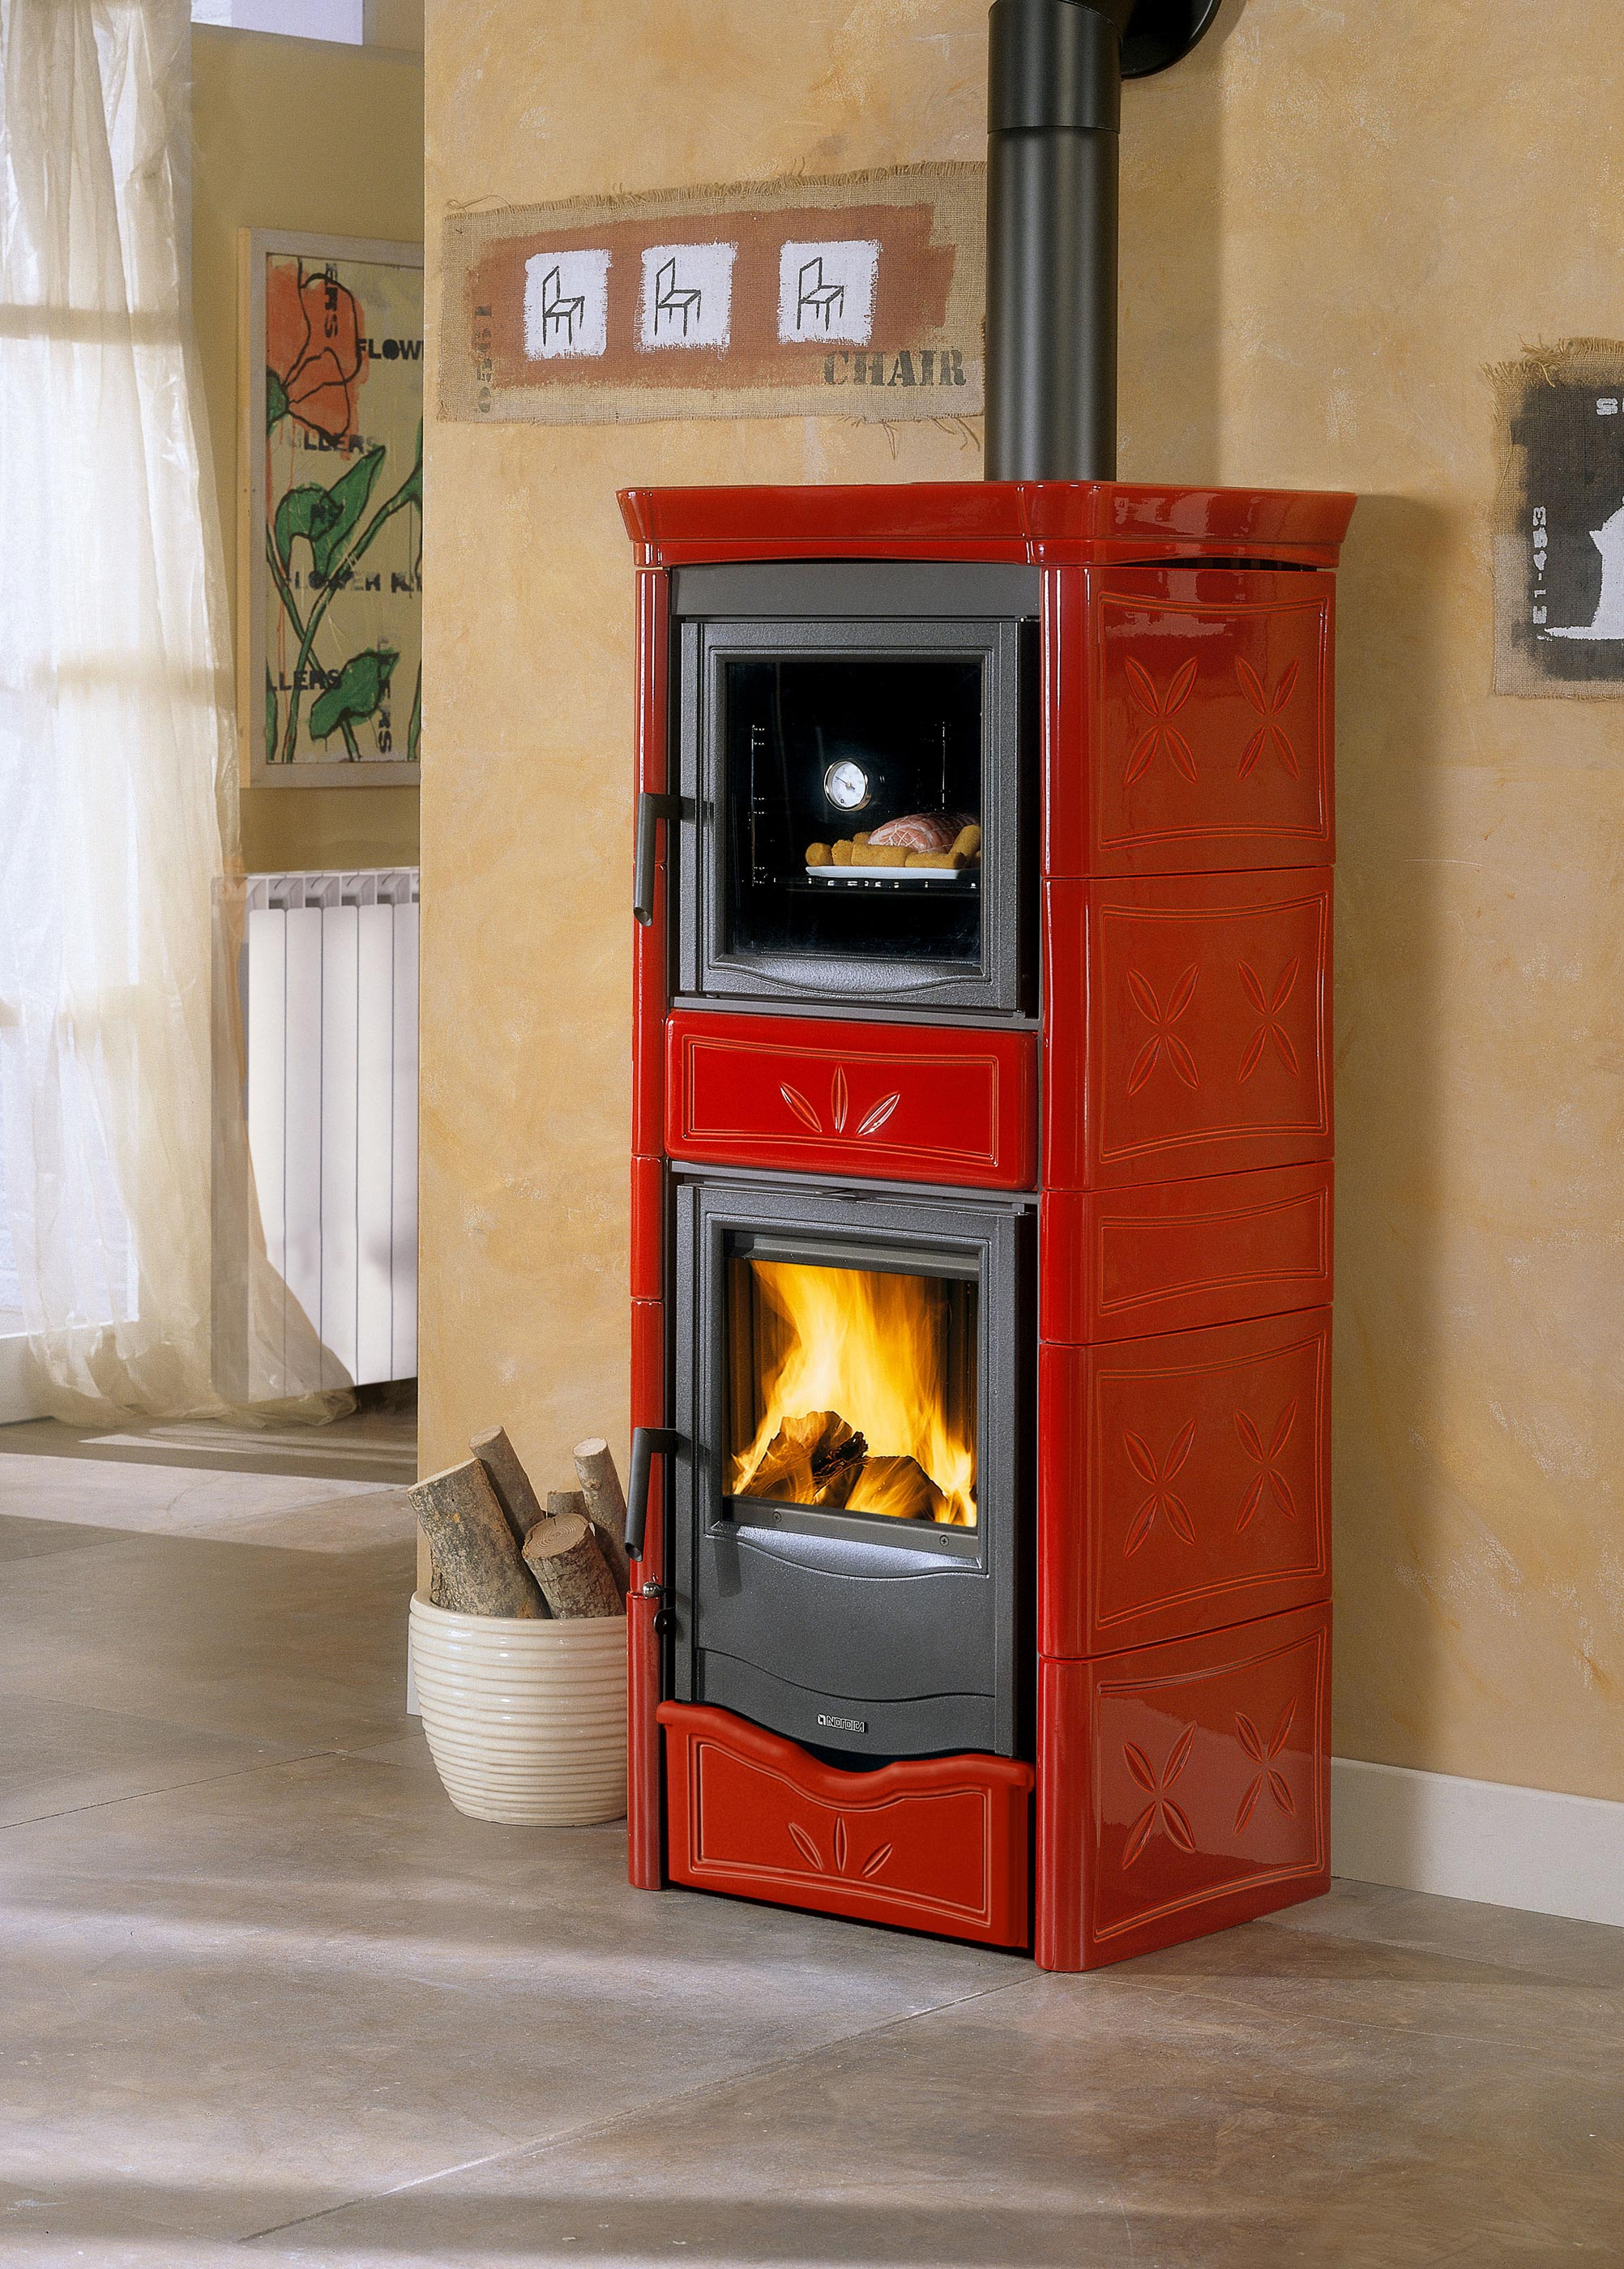 kaminofen la nordica thermo nicoletta forno wasserf hrend rot 8kw bei. Black Bedroom Furniture Sets. Home Design Ideas